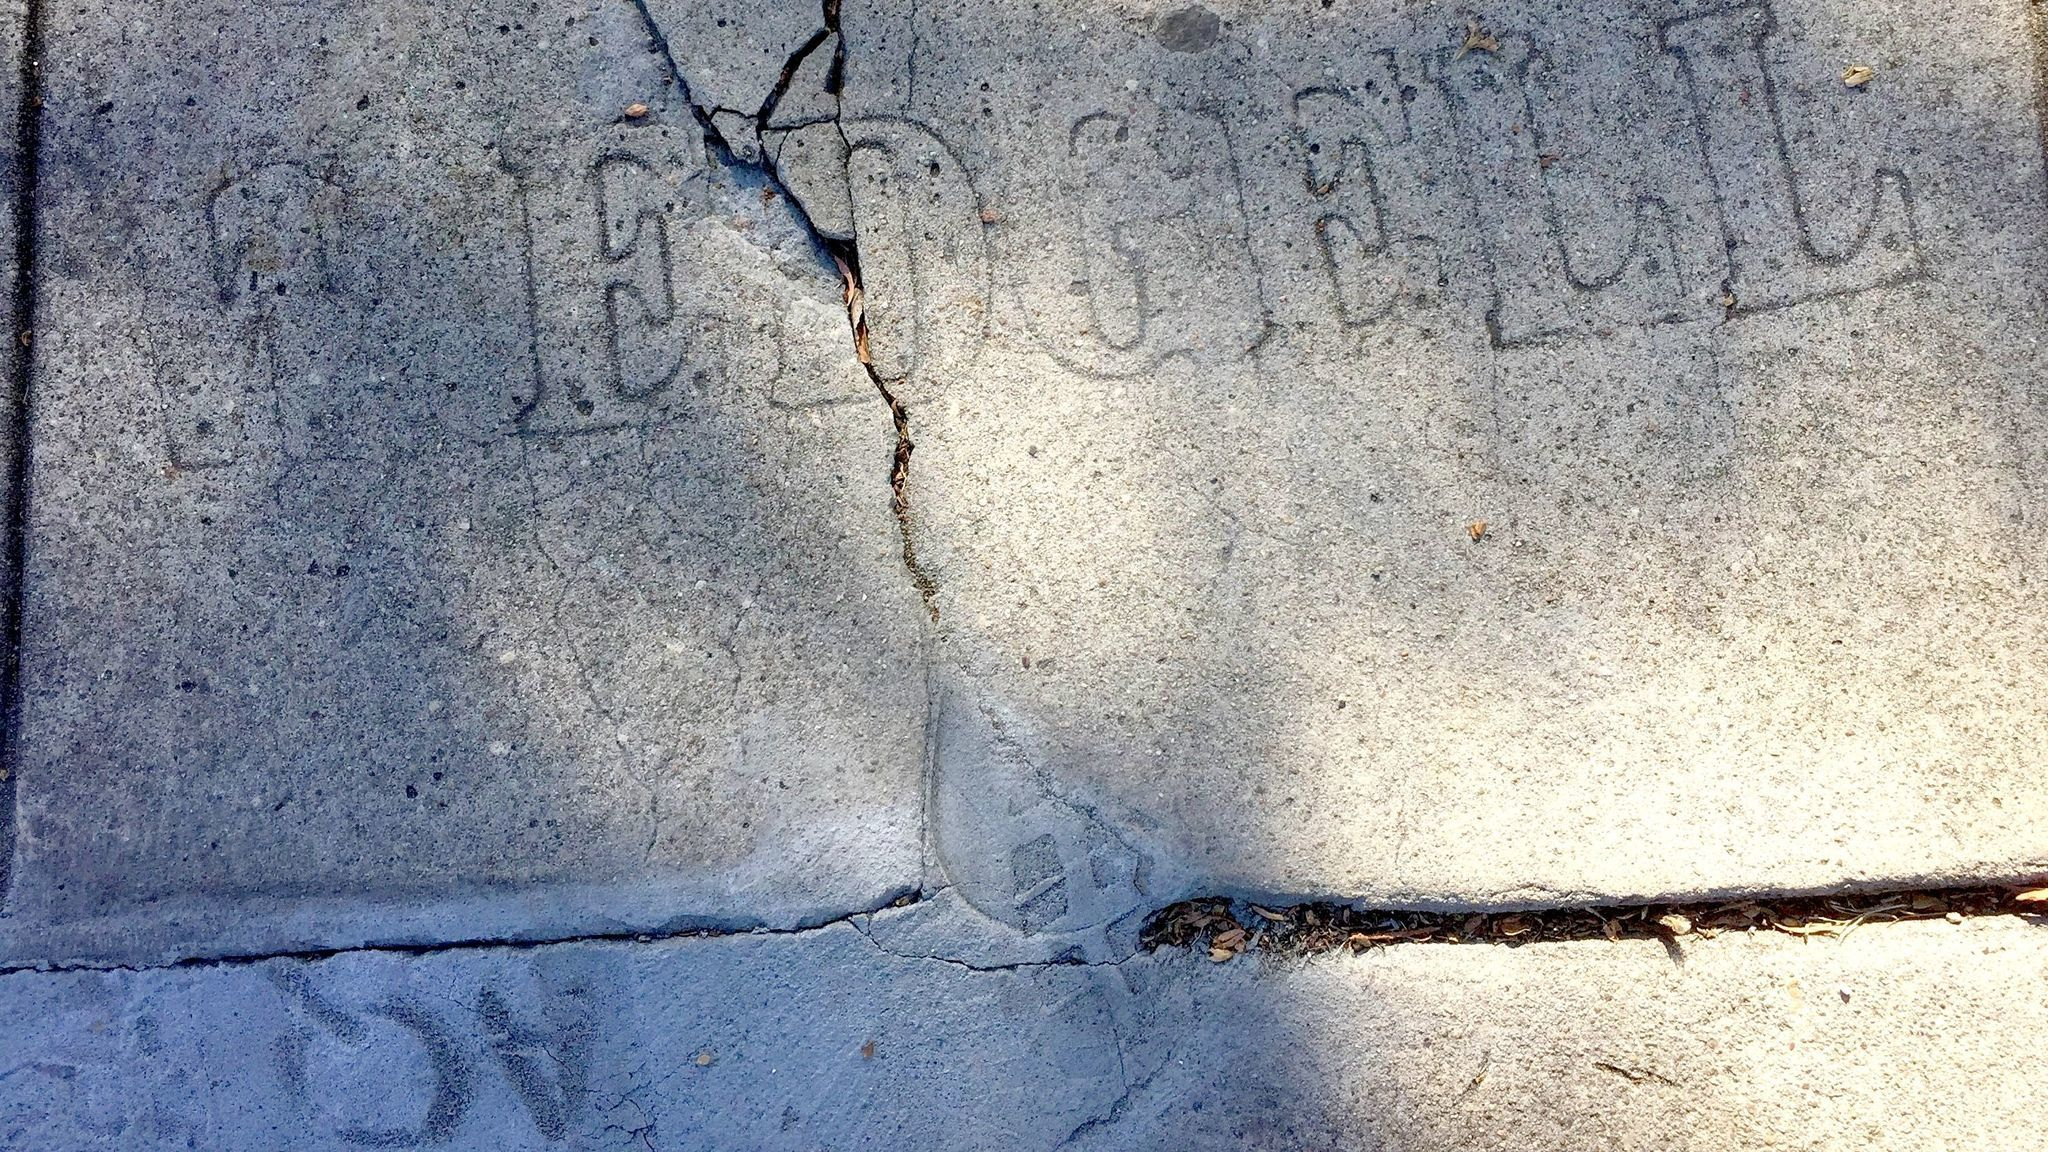 W. Edgell, getting fancy with the fonts on North Torrey Pines Road 100 years ago, now competes for space against a more modern sidewalk 'artist' (someone named AQ at bottom left)